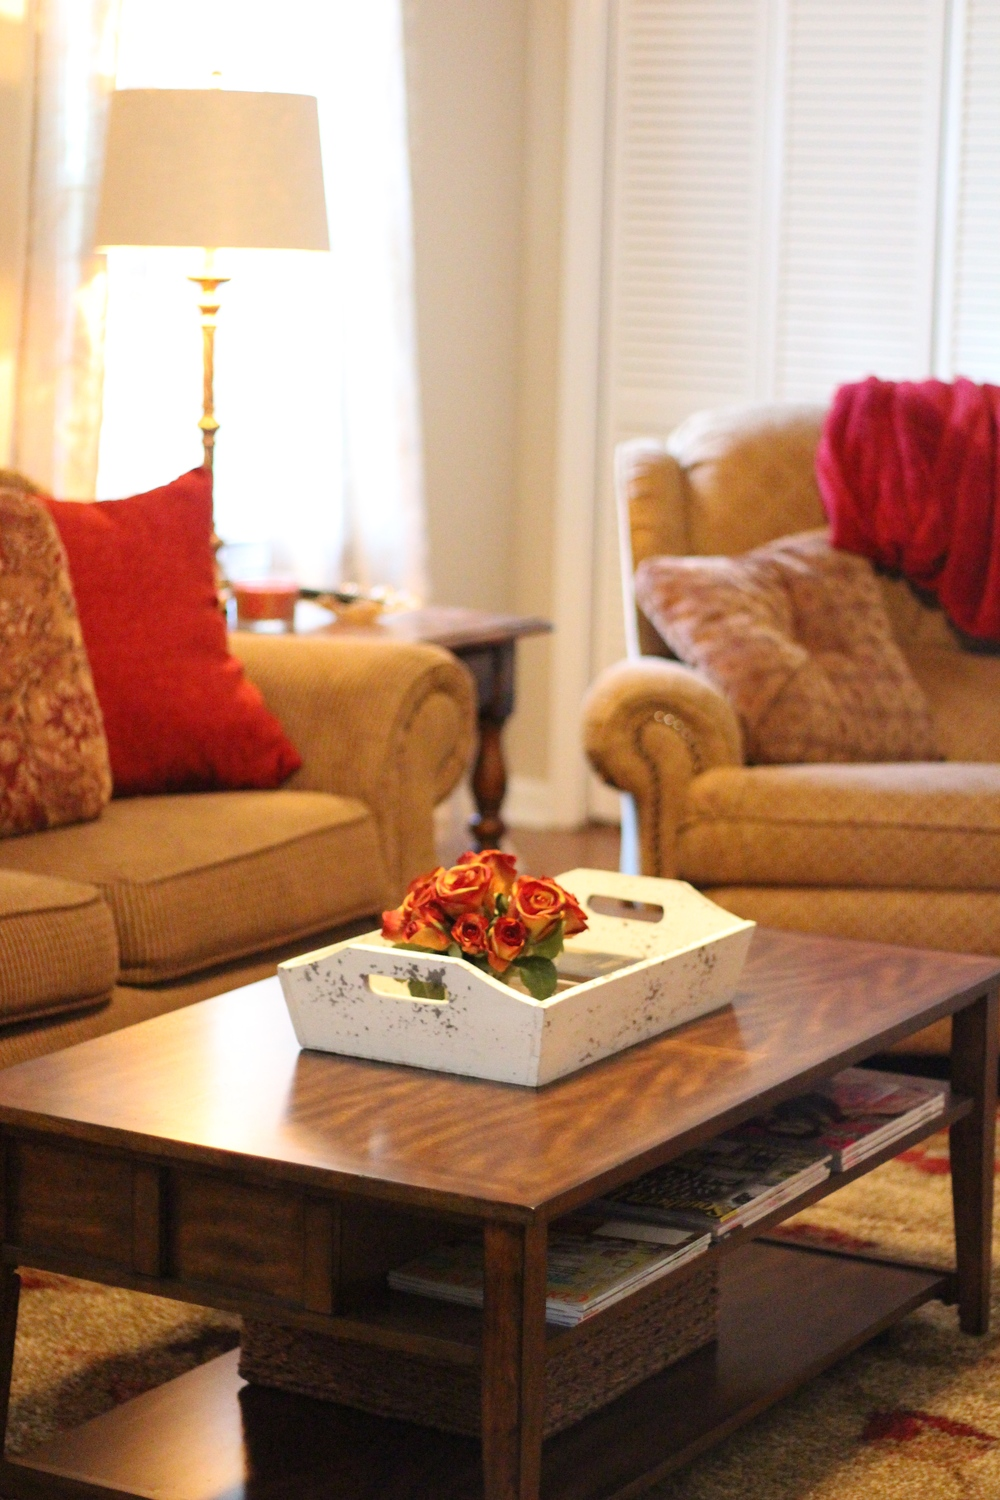 Coffee Table: Ashley from Peters & Foster, Inc. Tray, basket and floral: Home Goods Rug: Front Porch Designs via Surya.com